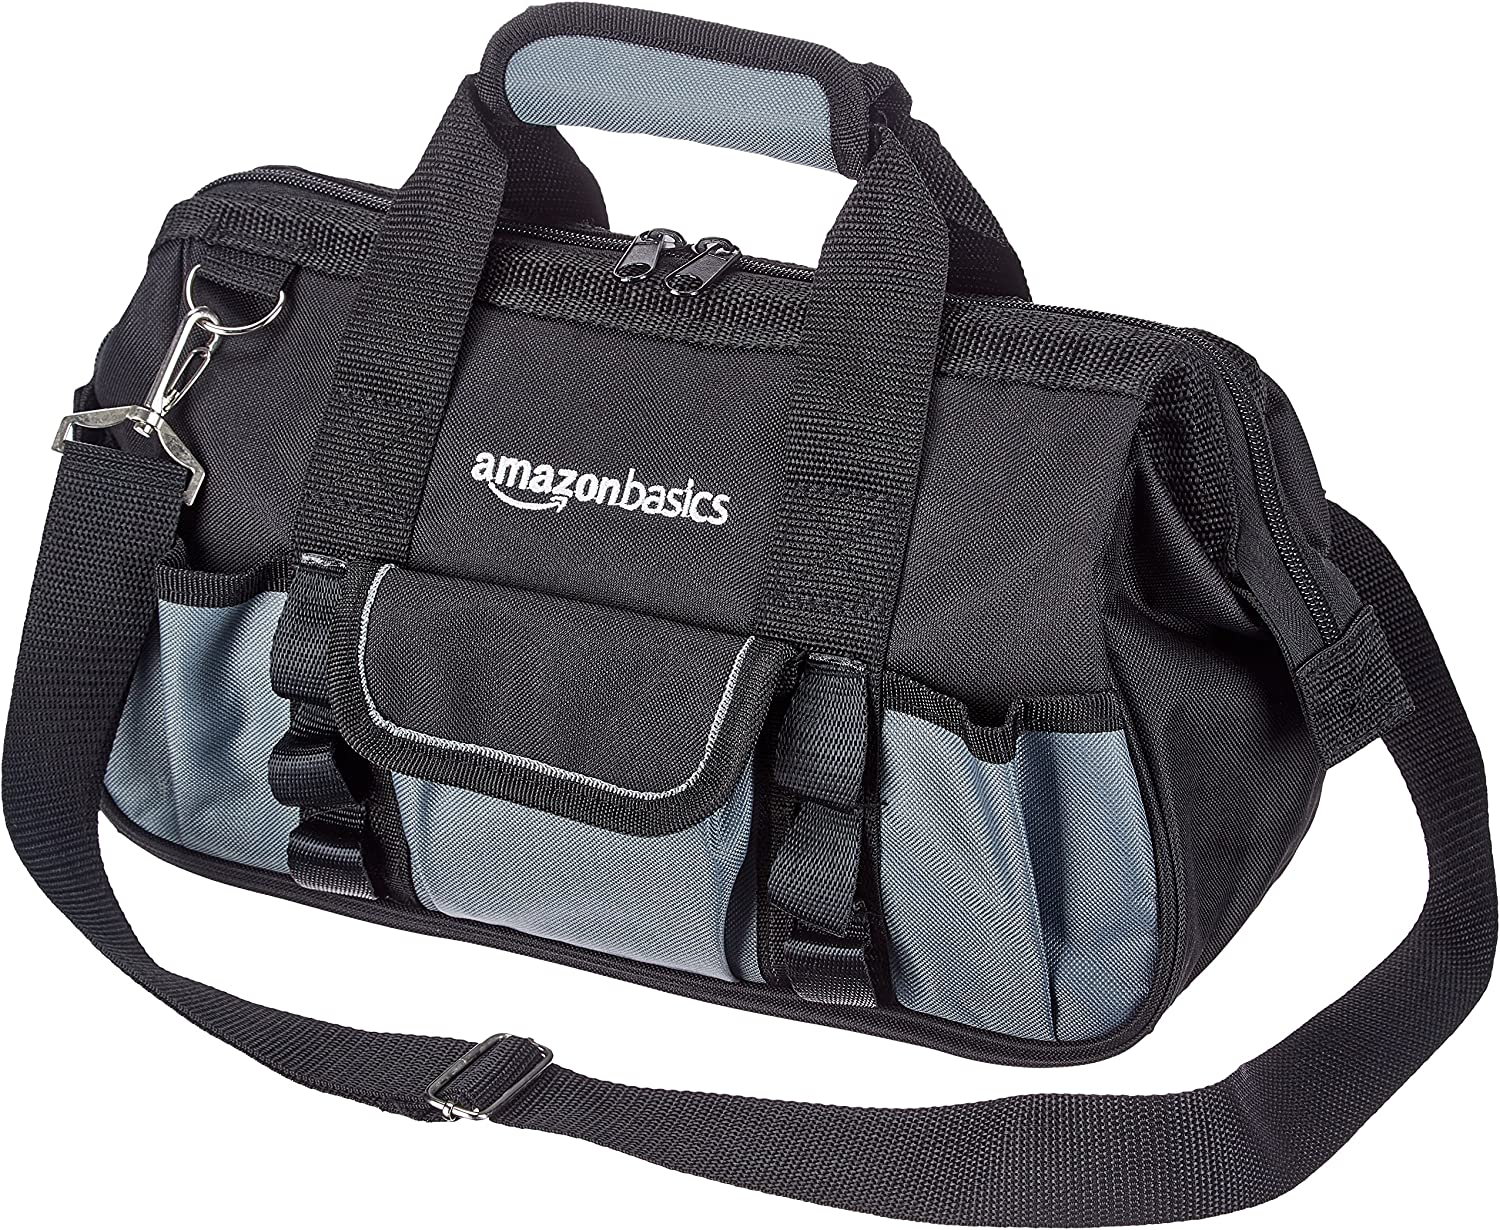 AmazonBasics Small Tool Bag - 12 Inch